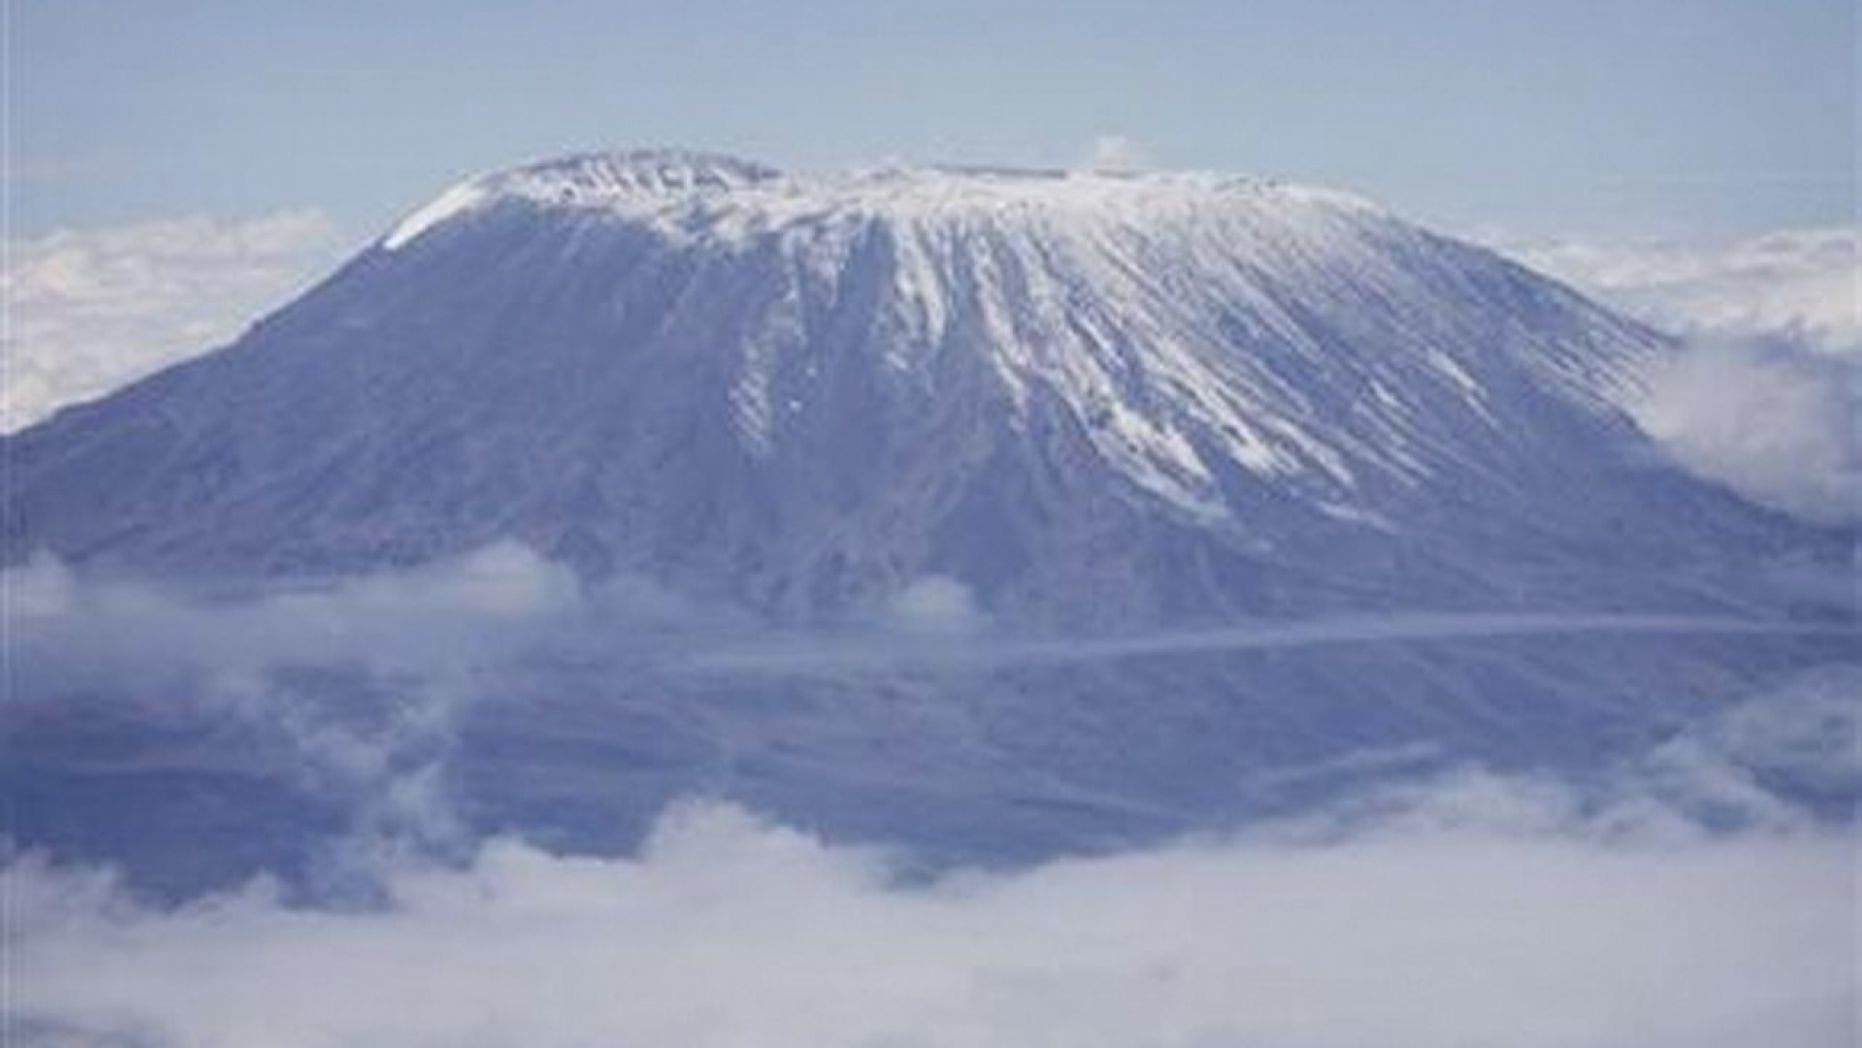 Mark Pattison's 7 summits stand includes Mount Kilimanjaro in Africa.